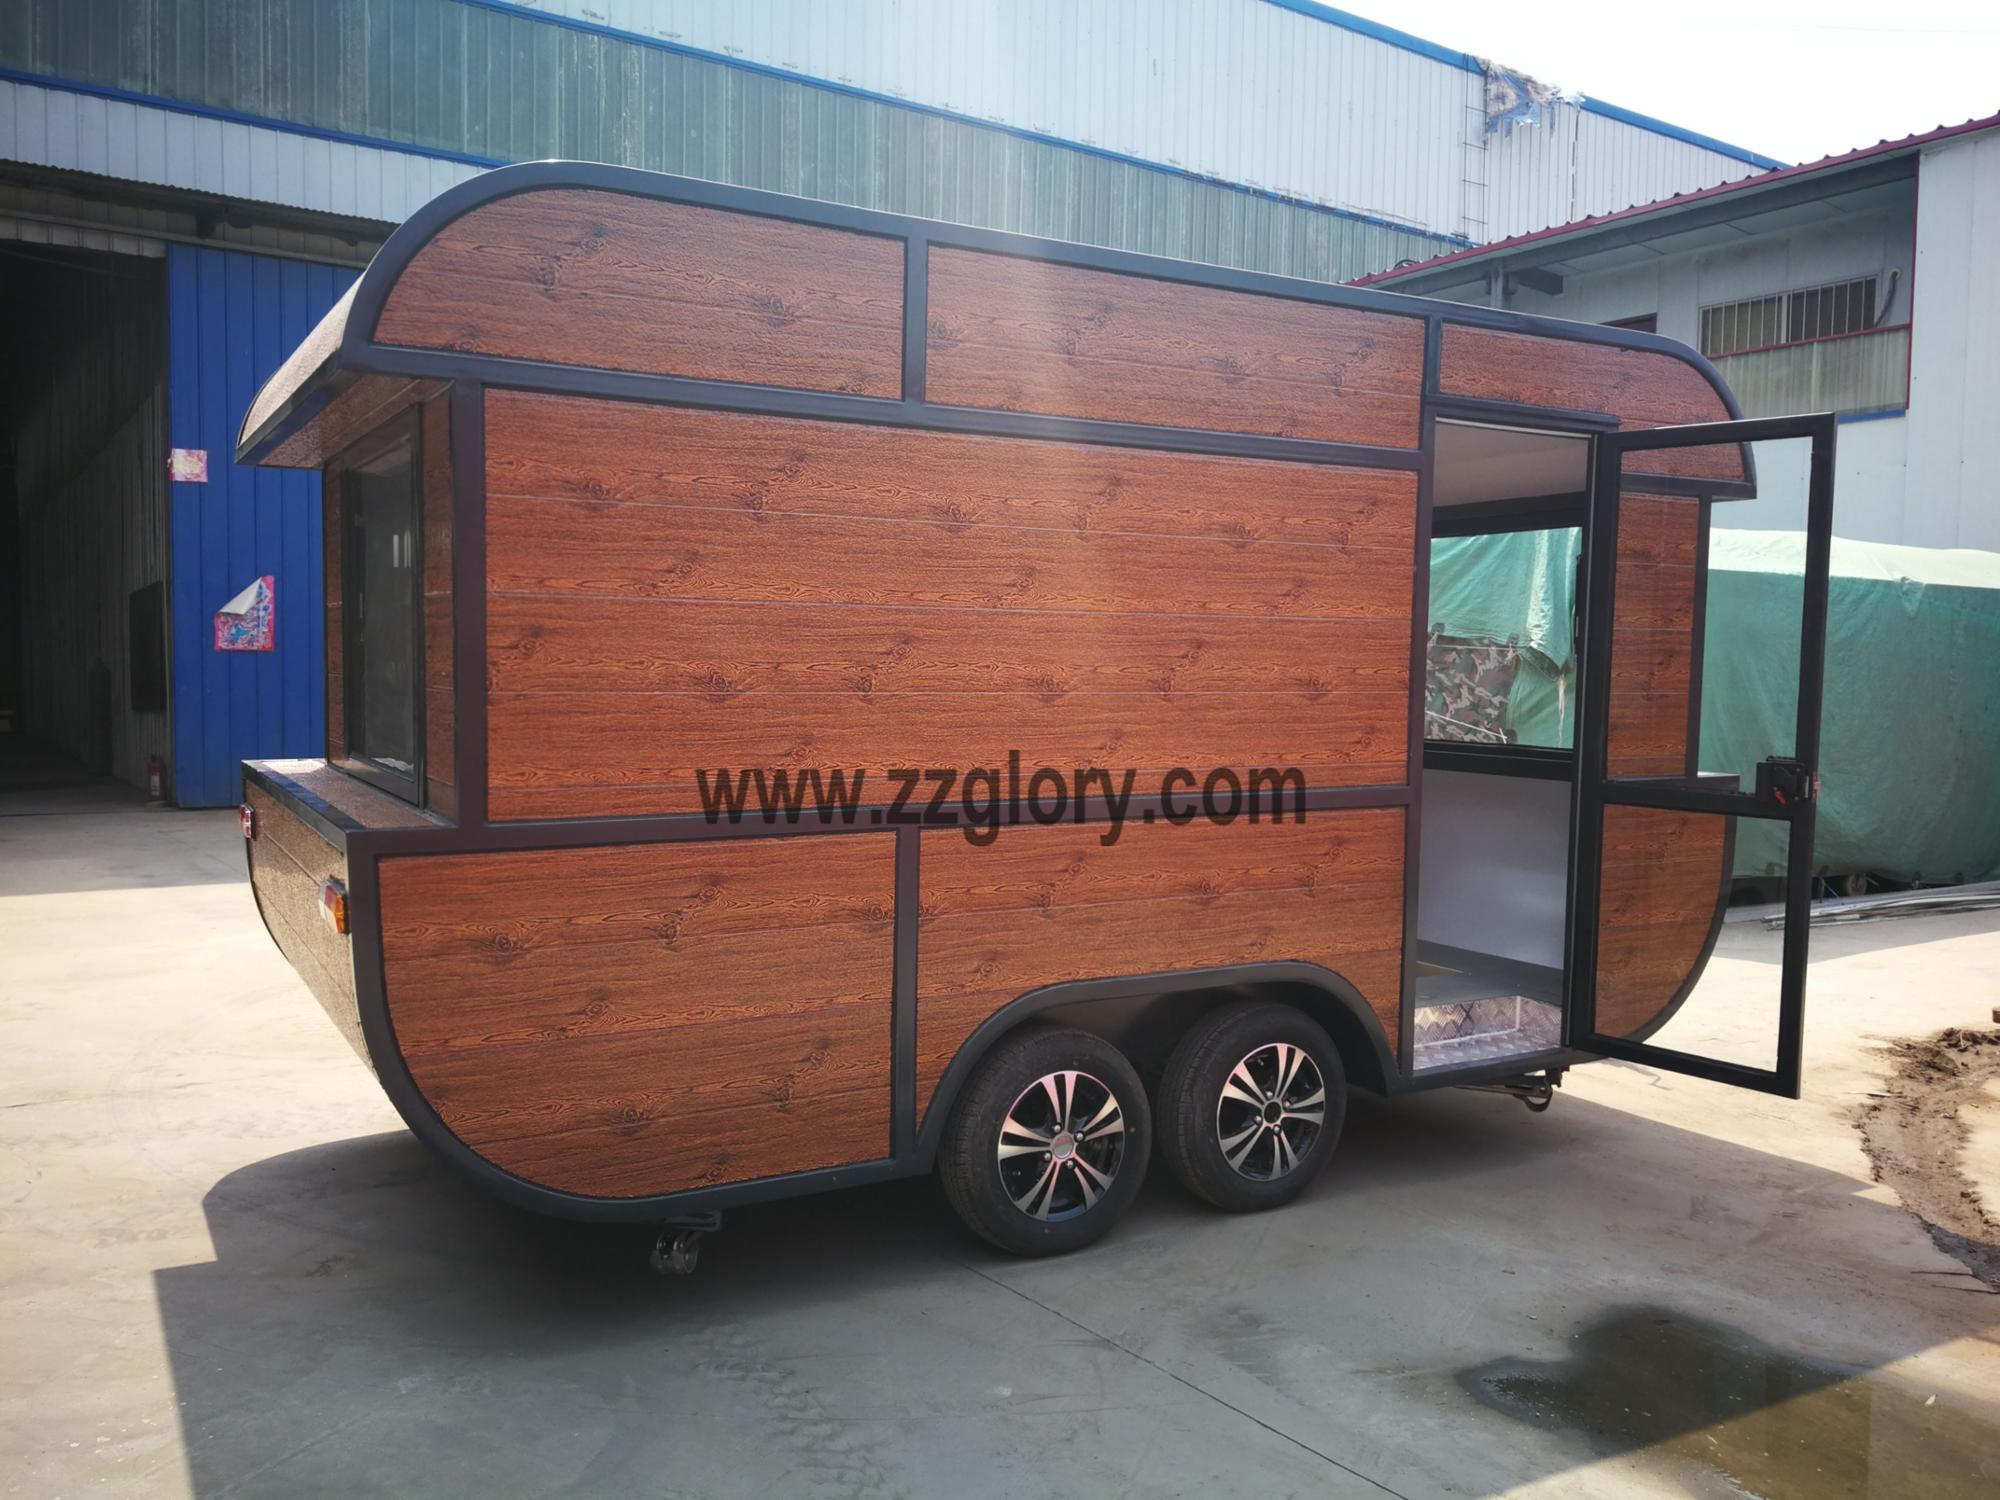 Hot Selling Food Cart Price Philippines Airline Food Trolley Franchise